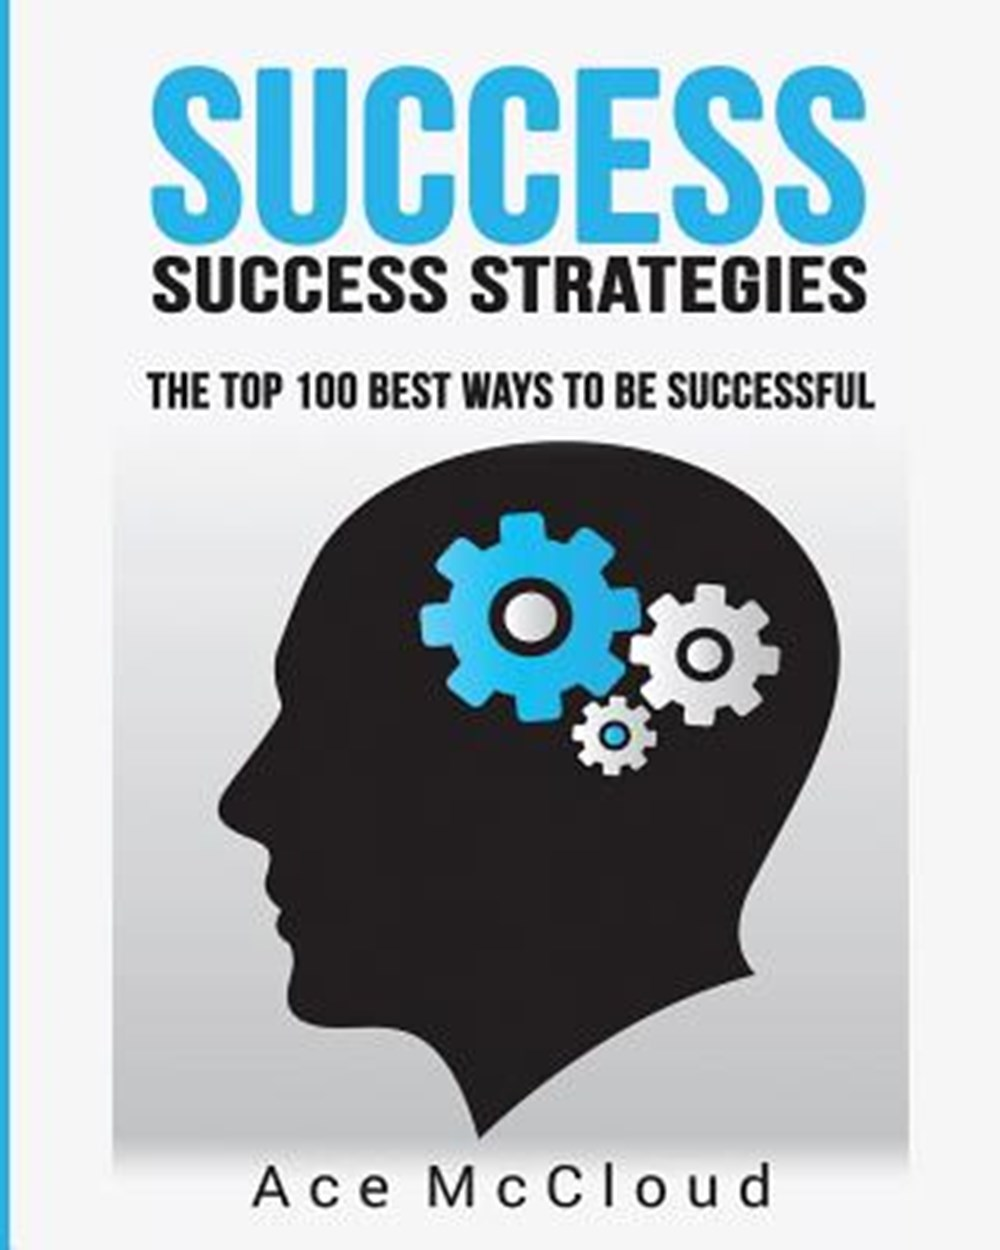 Success Success Strategies: The Top 100 Best Ways To Be Successful